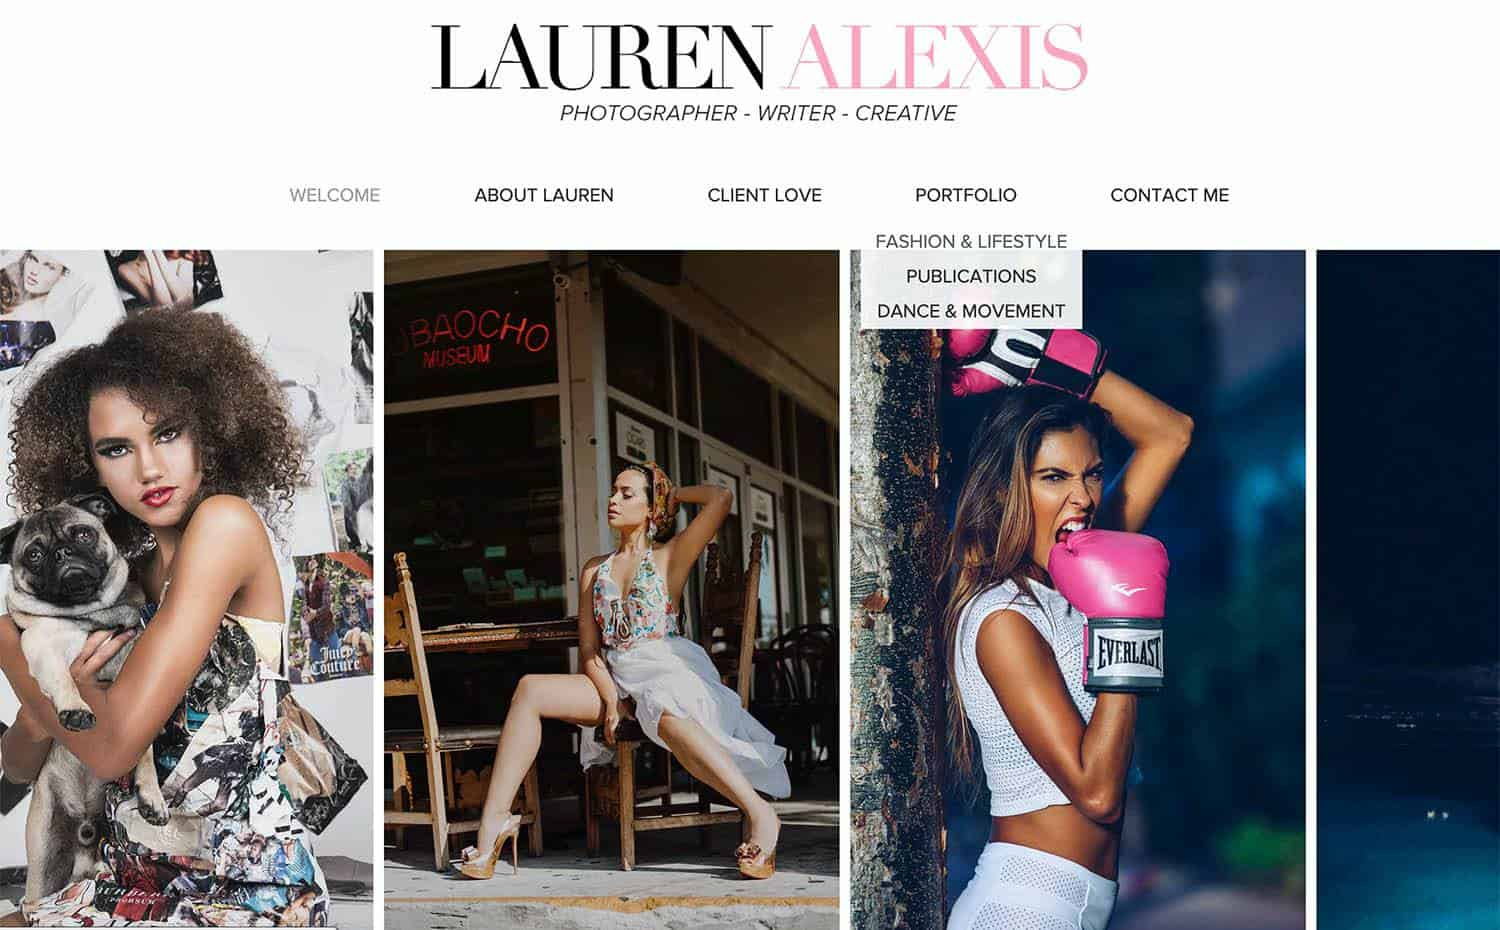 The homepage of Lauren Alexis Rodriguez's website is featured. Three fashion headshots are showcased against a white background below Lauren's logo.